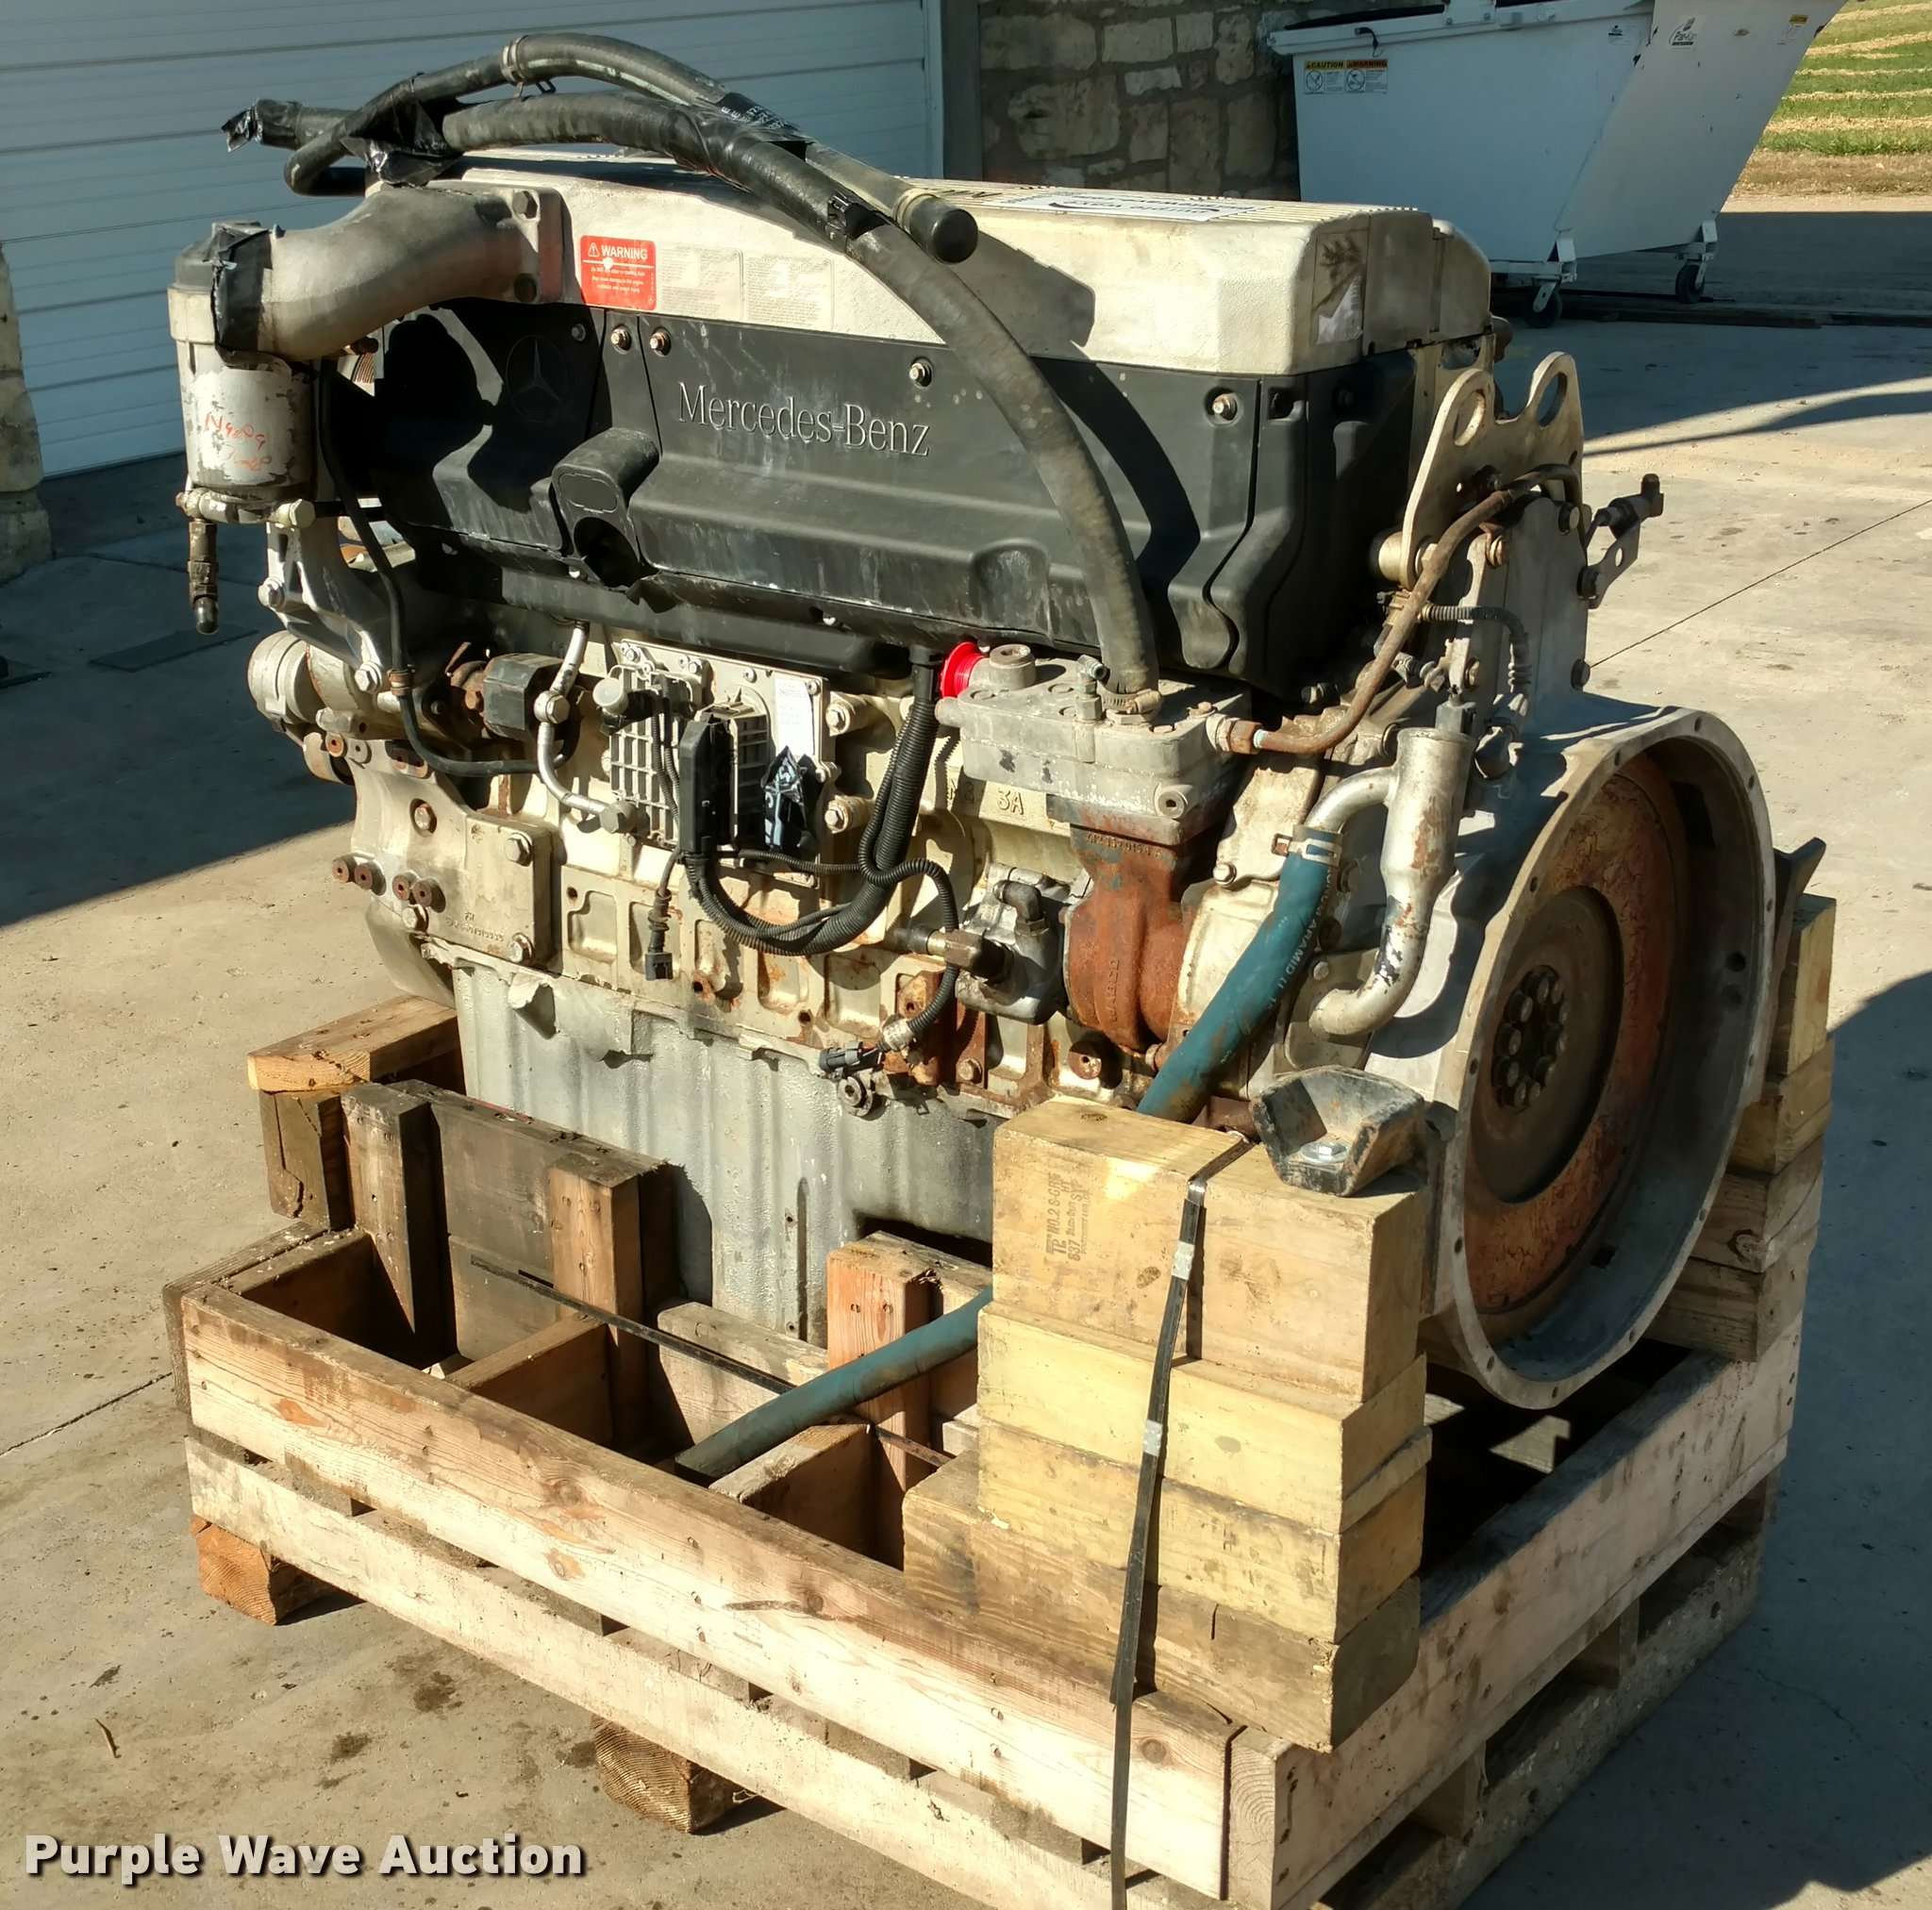 diesel engine features photo torque engines gallery mercedes benz image om